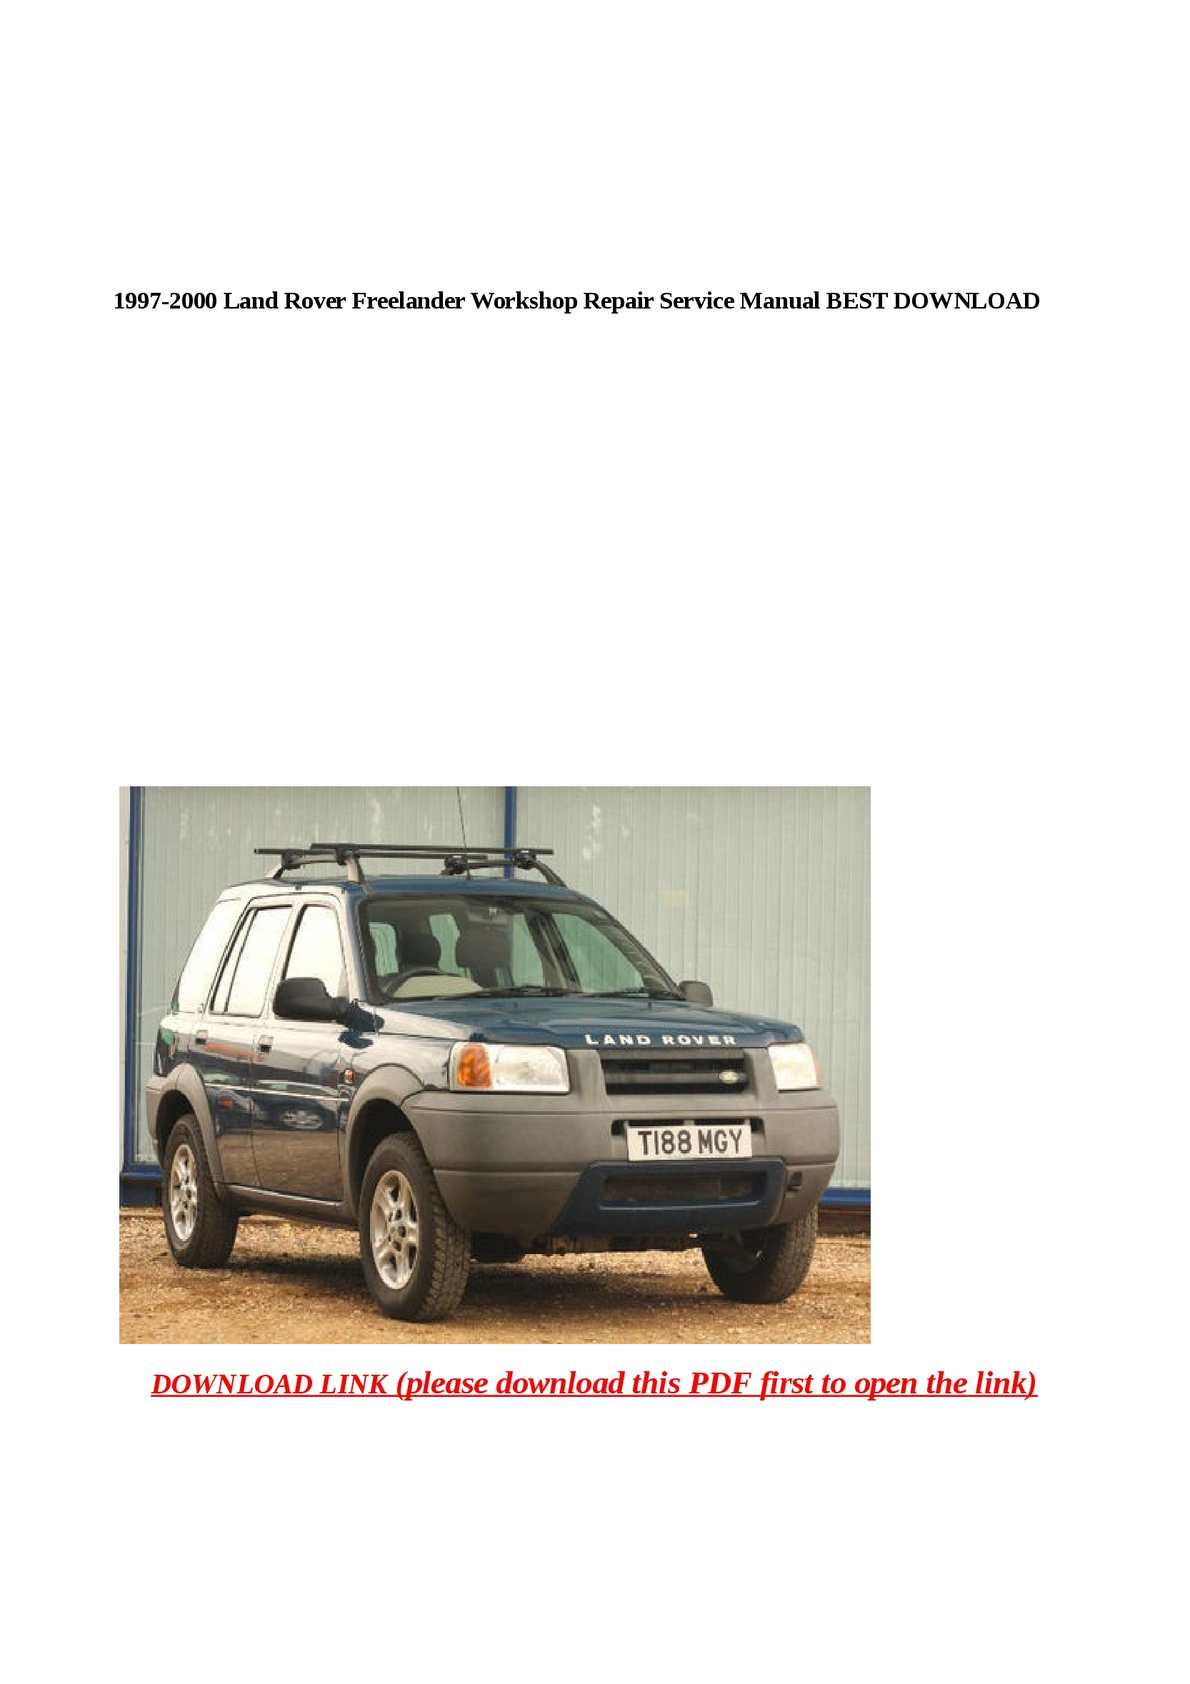 Calamo 1997 2000 Land Rover Freelander Workshop Repair Service Discovery Fuse Diagram Manual Best Download